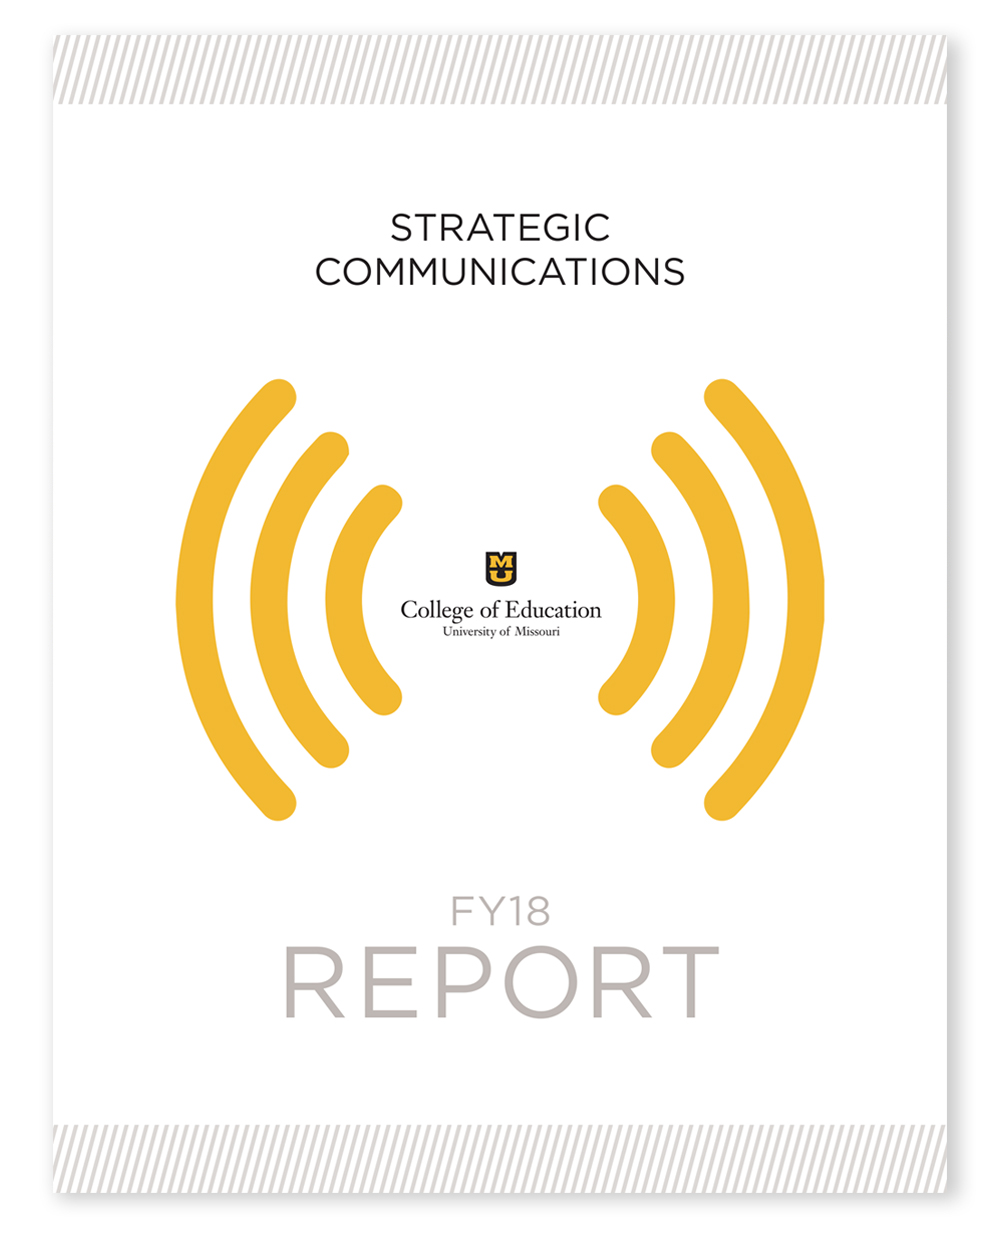 University of Missouri College of Education Office of Strategic Communications Annual Report FY18